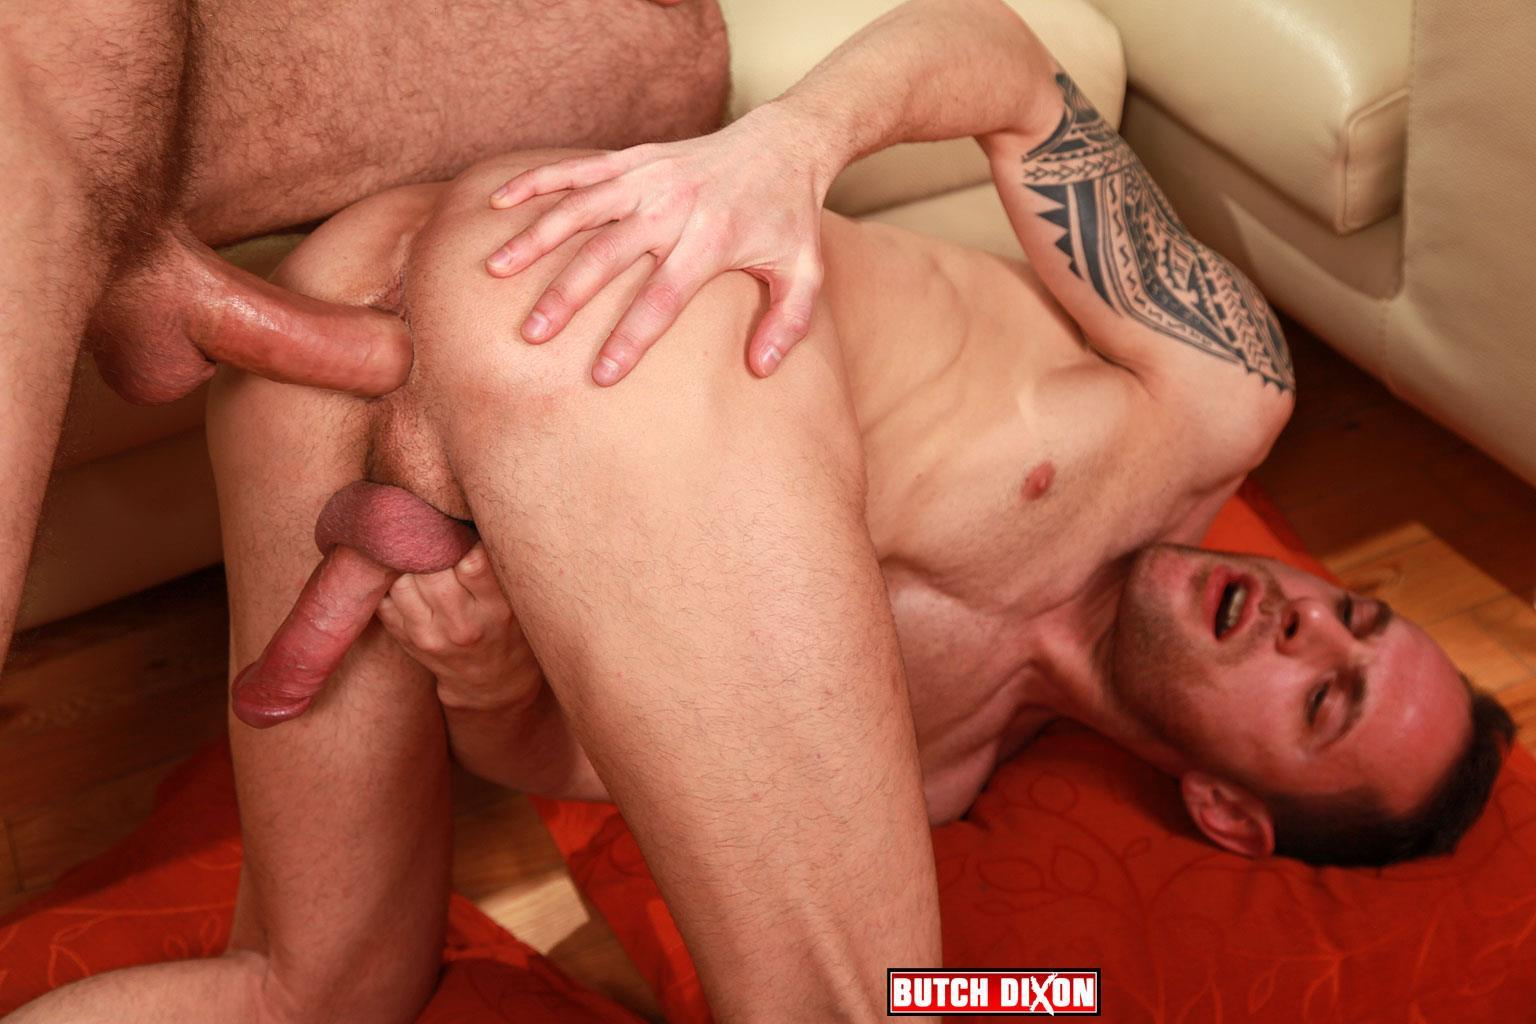 Butch-Dixon-Aitor-Bravo-and-Craig-Daniel-Big-Uncut-Cock-Barebacking-Breeding-BBBH-Amateur-Gay-Porn-18 Craig Daniel Barebacking Aitor Bravo With His Huge Uncut Cock